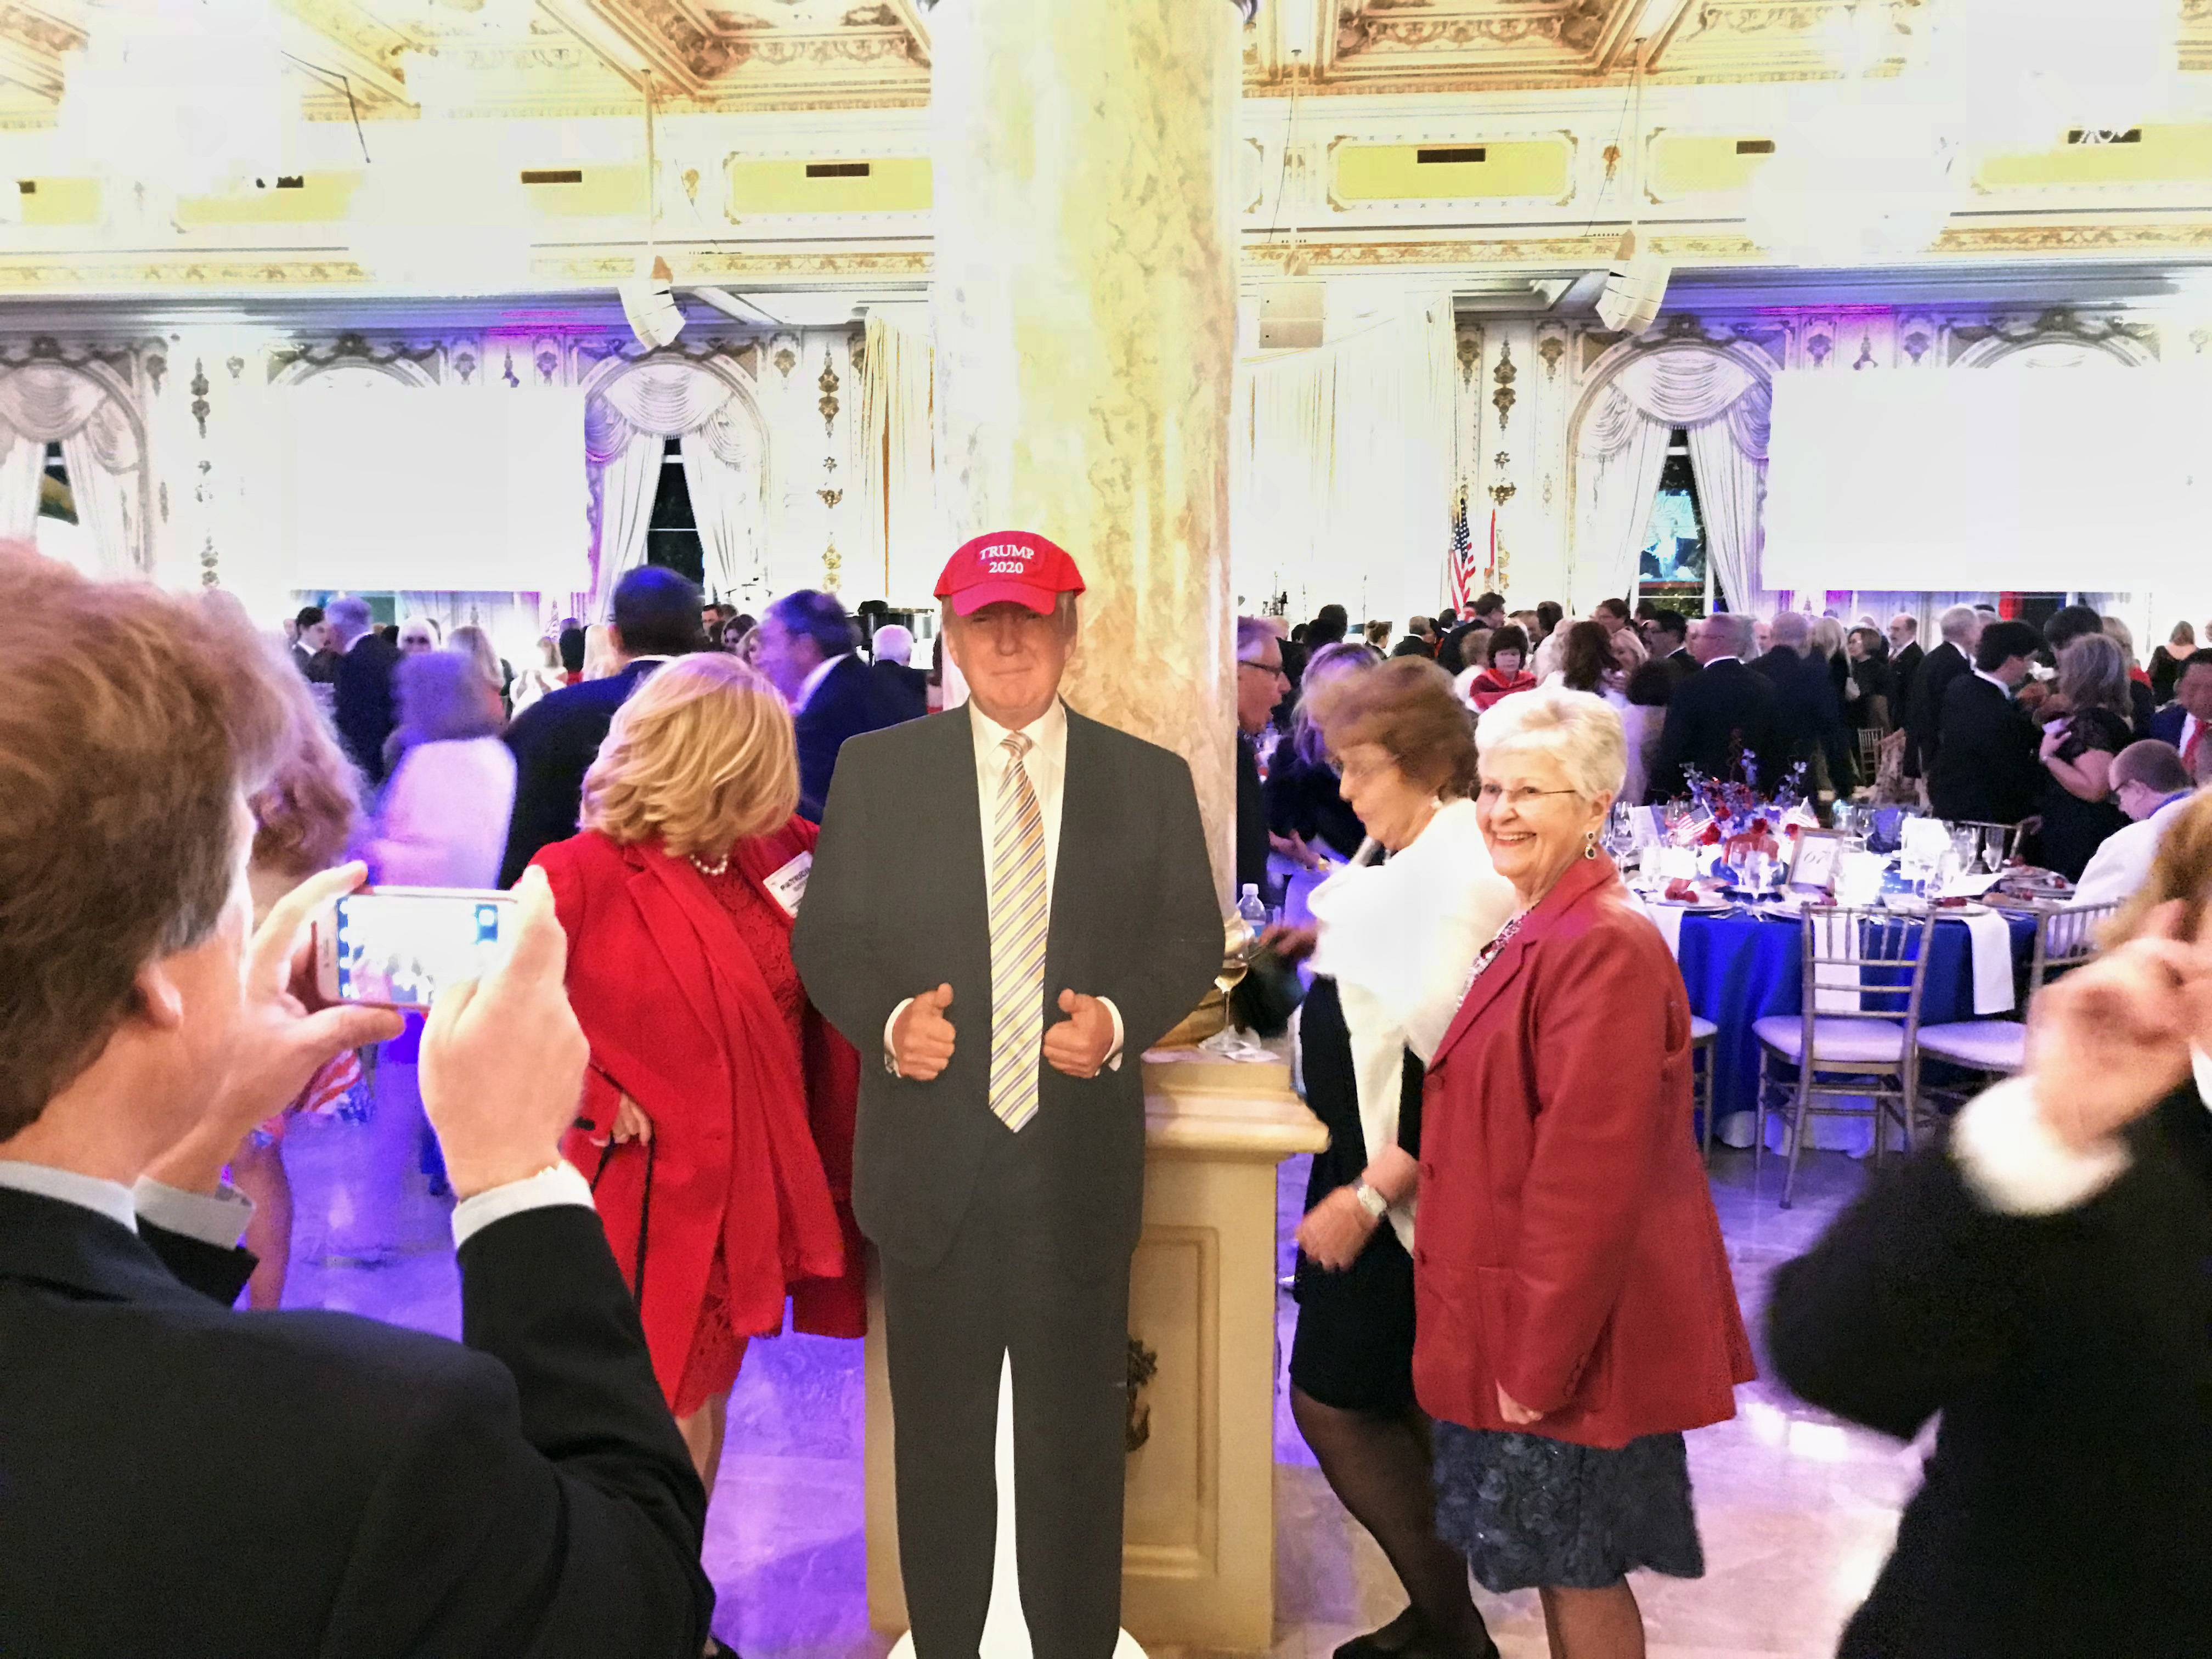 Supporters of President Donald Trump pose with a cardboard cutout at the entrance to the Donald J. Trump Grand Ballroom at Trump's Mar-a-Lago Club in Palm Beach, Florida.